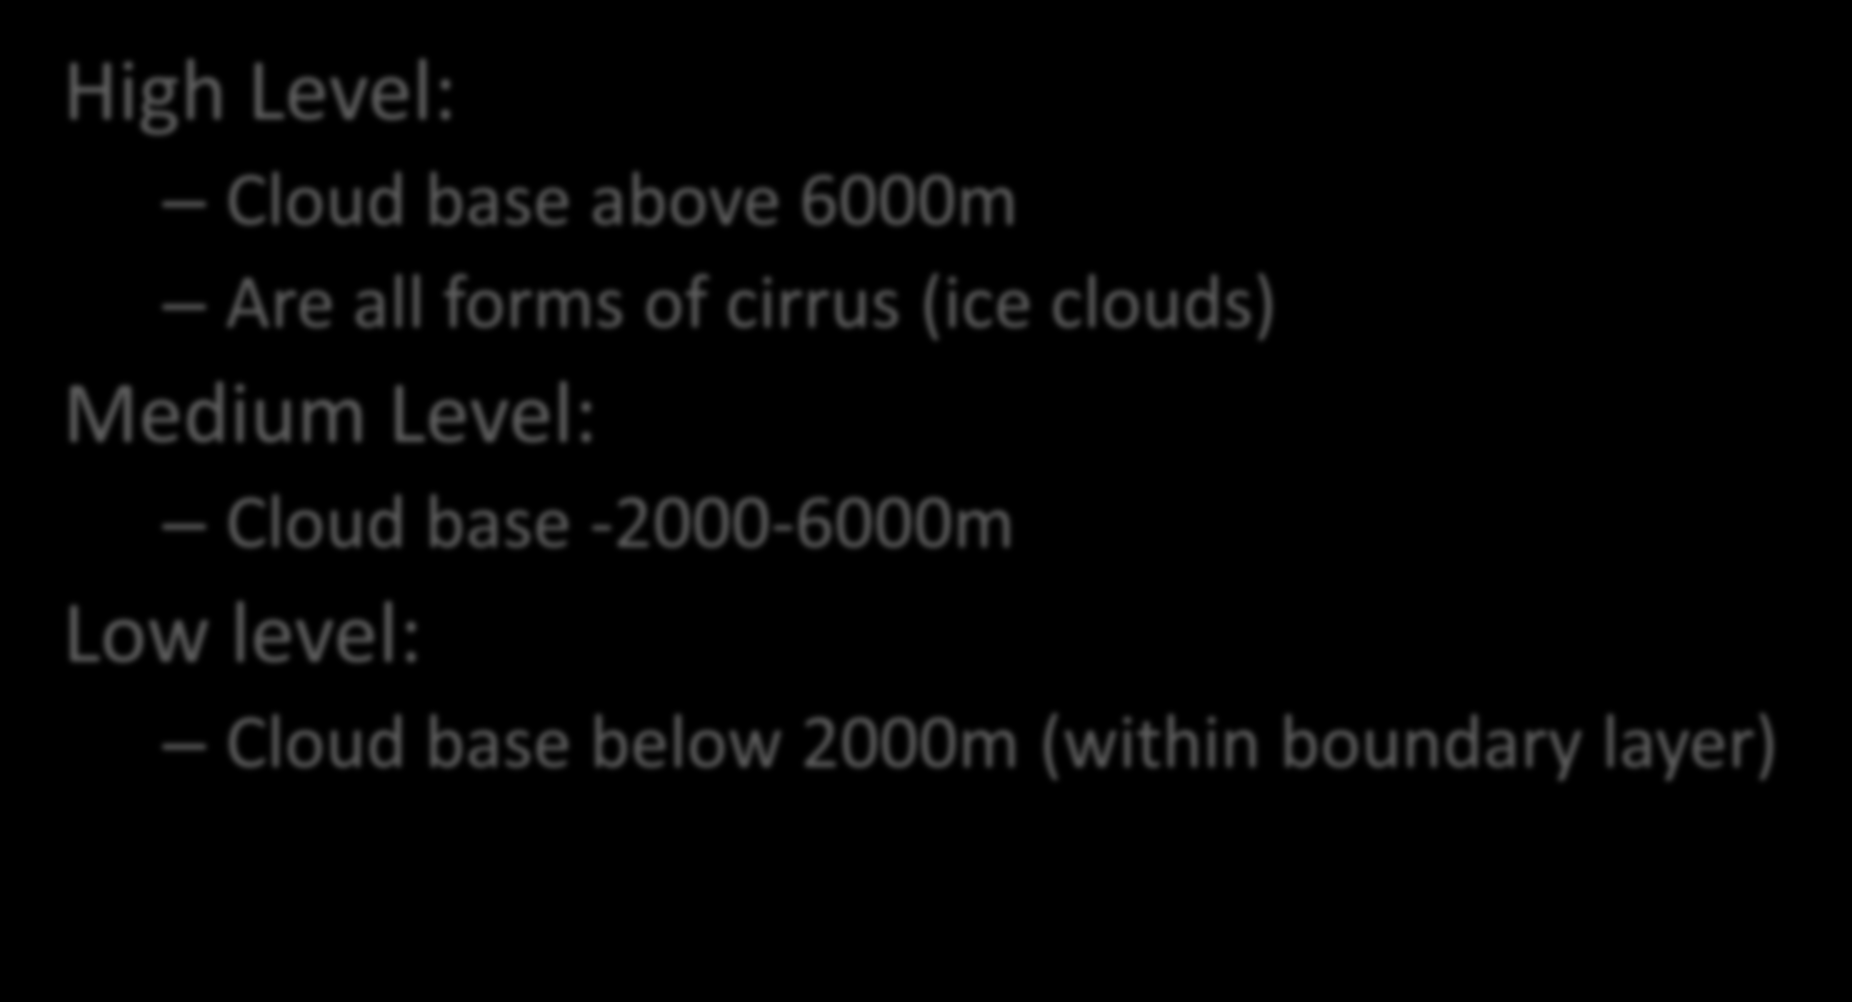 High Level: Cloud base above 6000m Are all forms of cirrus (ice clouds) Medium